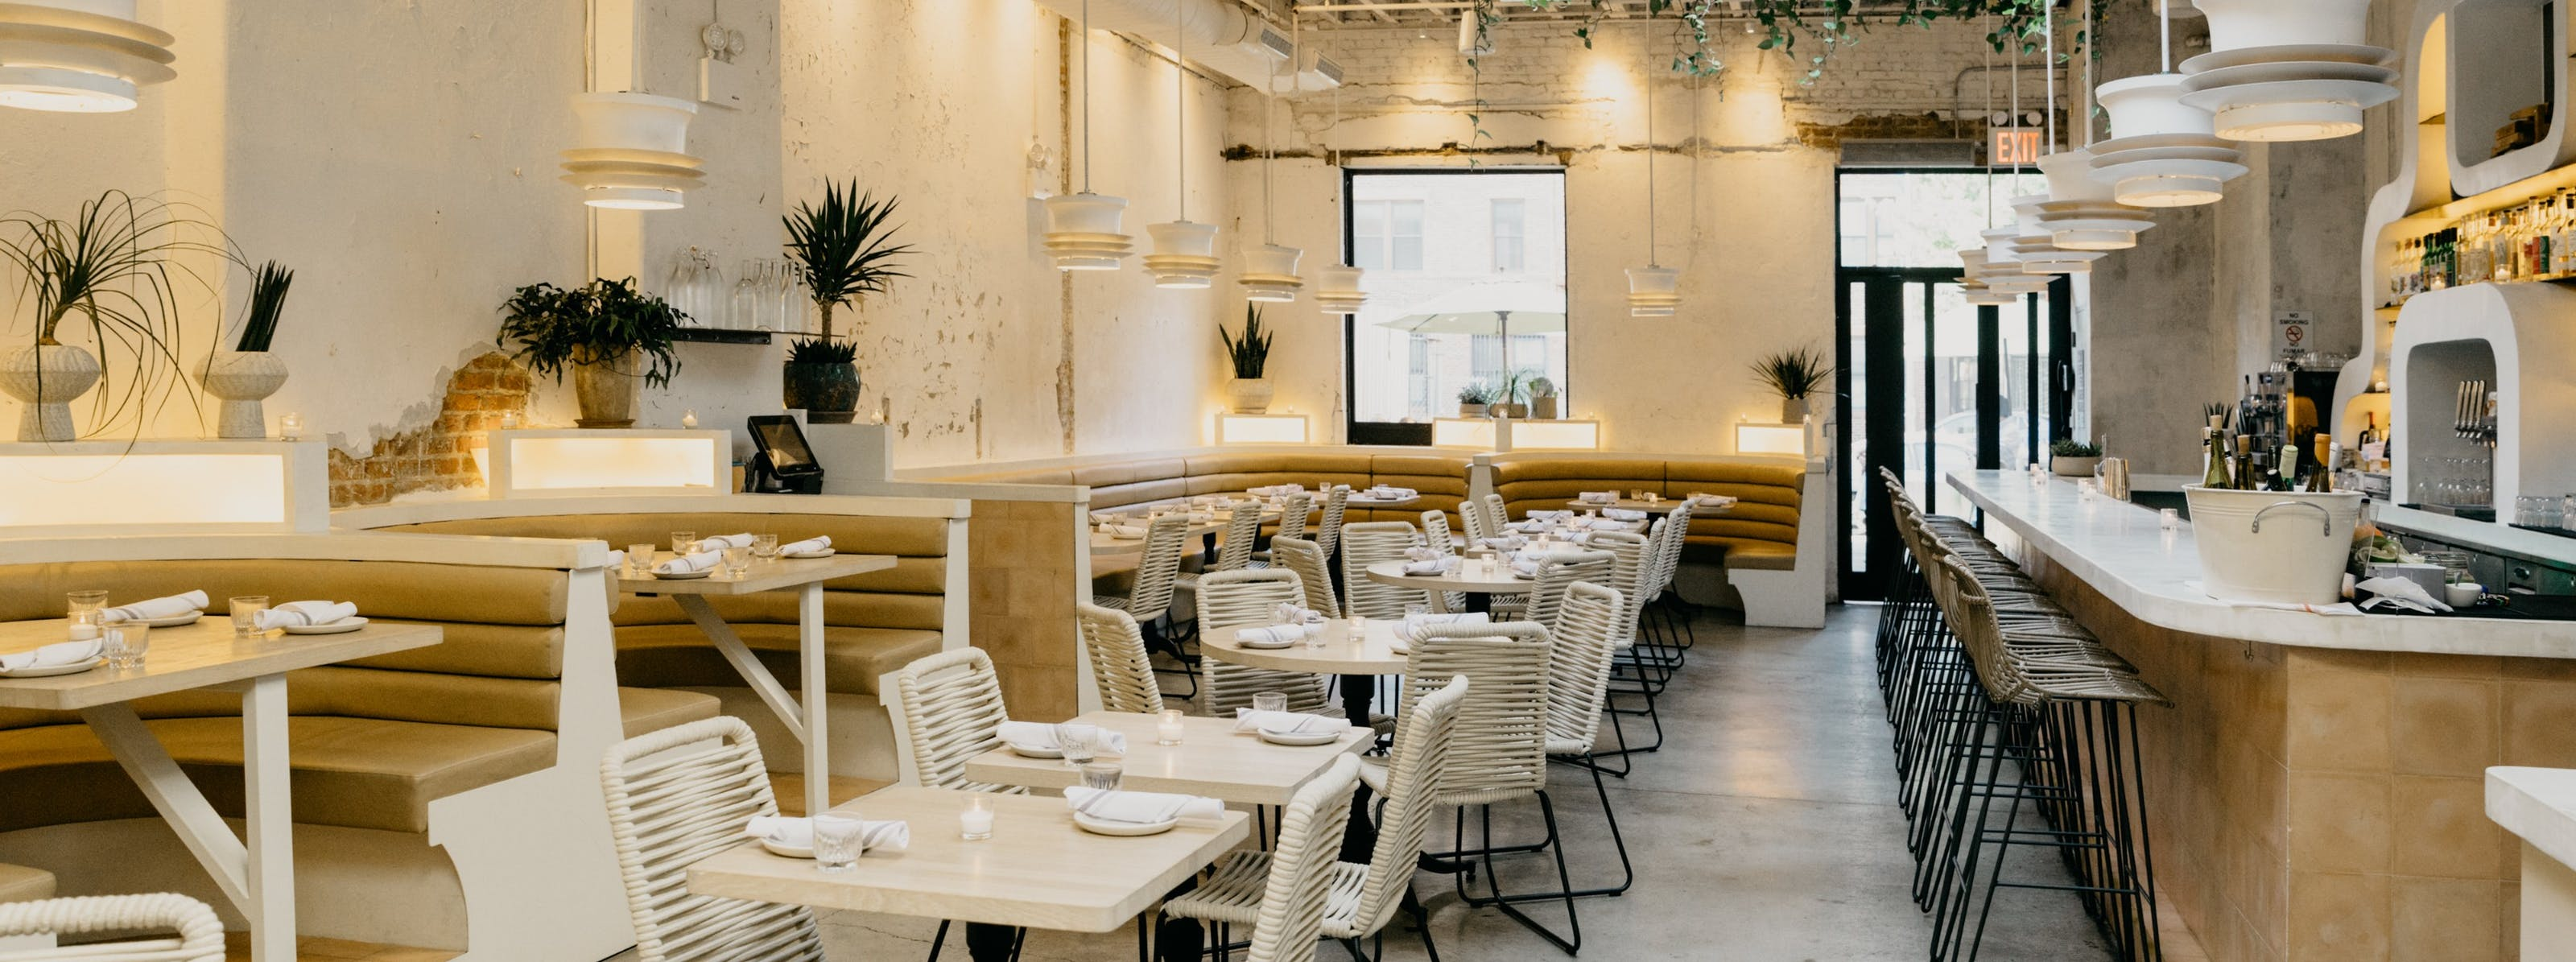 The 20 Best Restaurants In Greenpoint Greenpoint New York The Infatuation